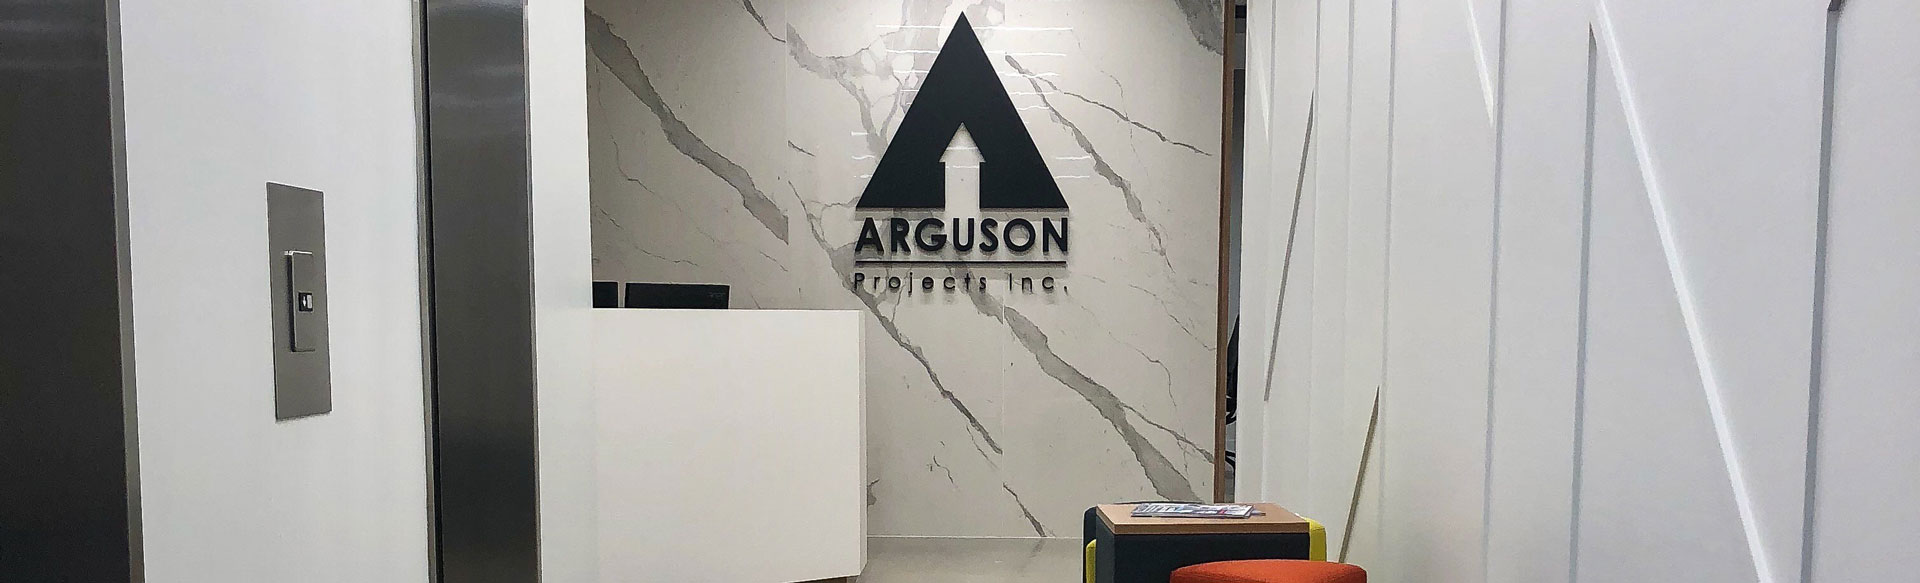 Arguson Projects Inc. – New Office and New Website